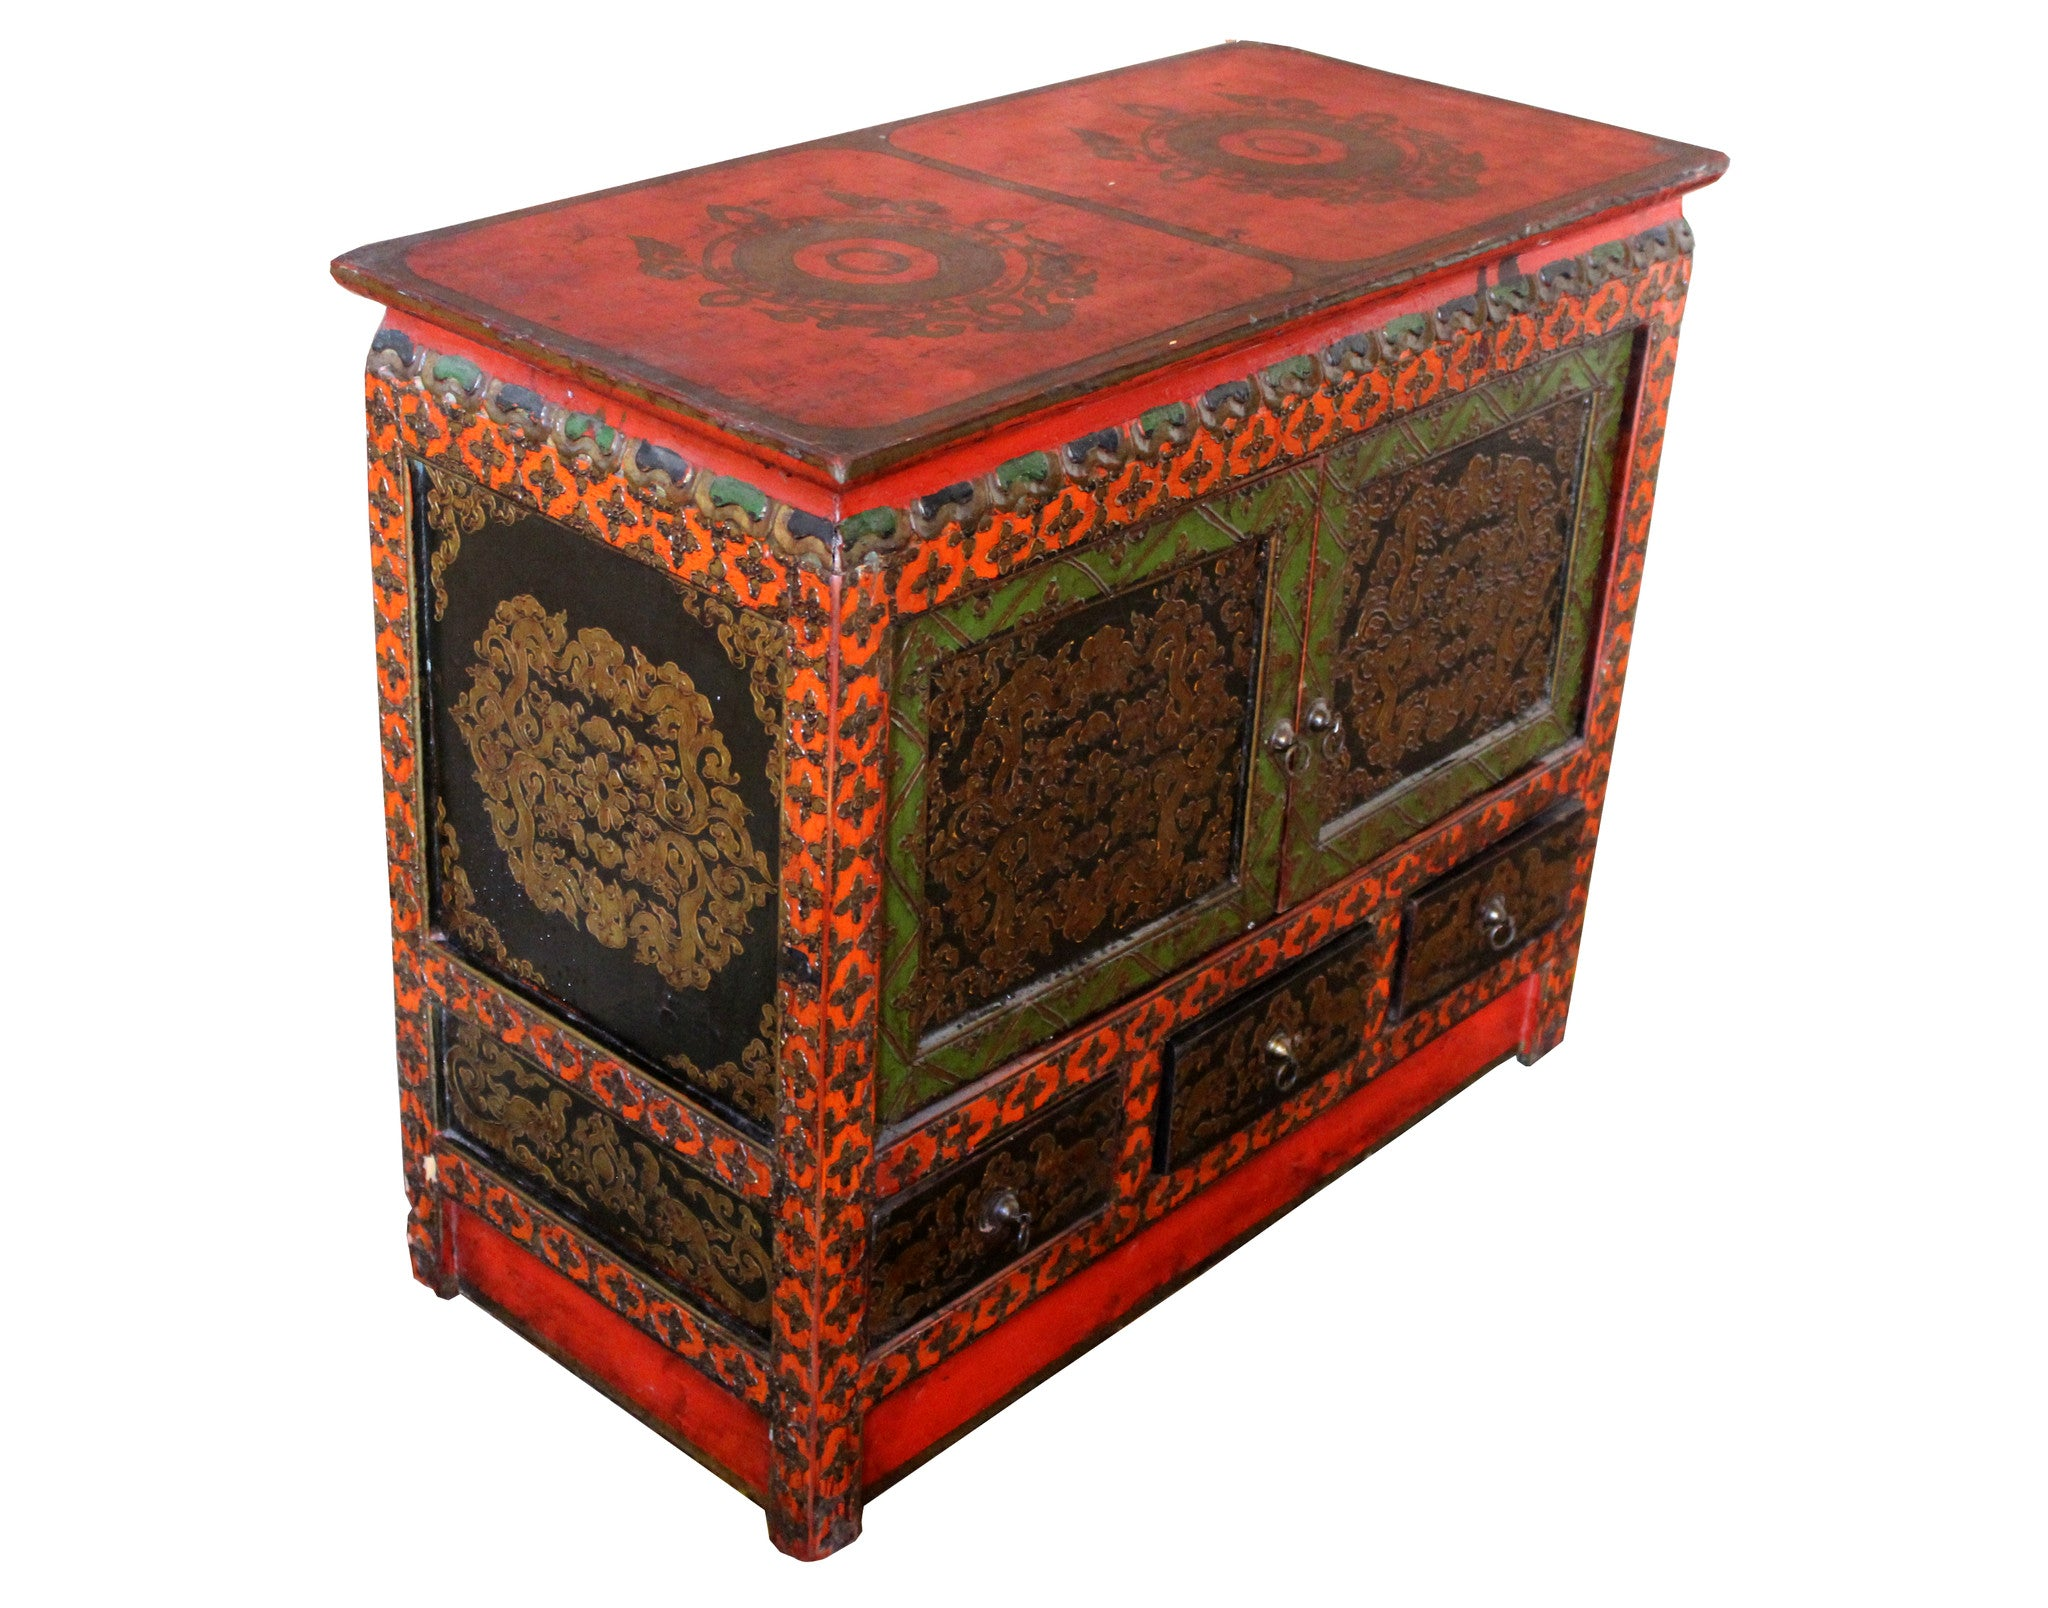 ... Z Small Tibetan Cabinet With Embossed Doors And Drawers   Dyag East ...